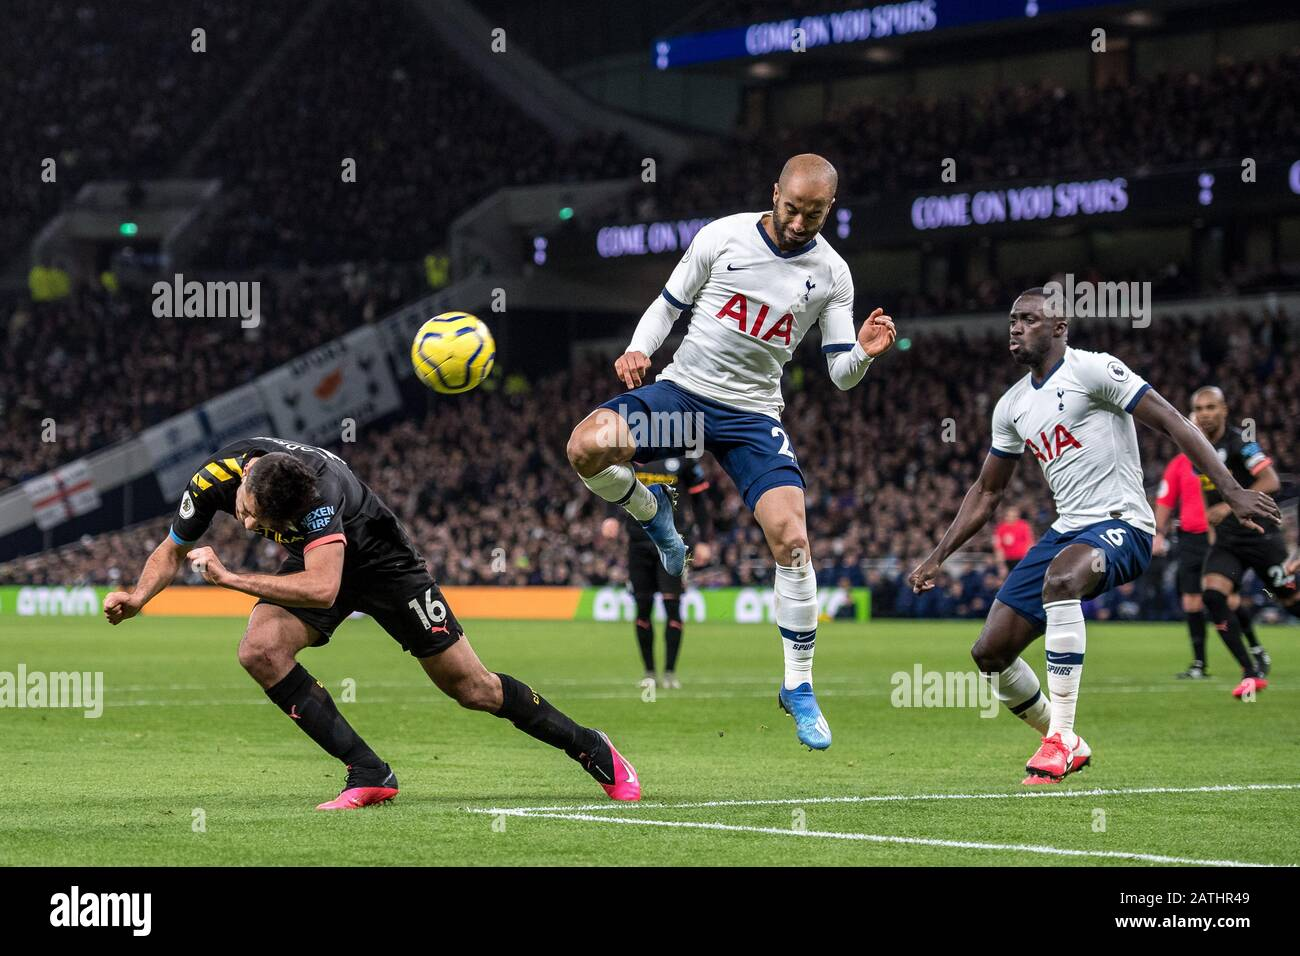 LONDON, ENGLAND - FEBRUARY 02: during the Premier League match between Tottenham Hotspur and Manchester City at Tottenham Hotspur Stadium on February Stock Photo